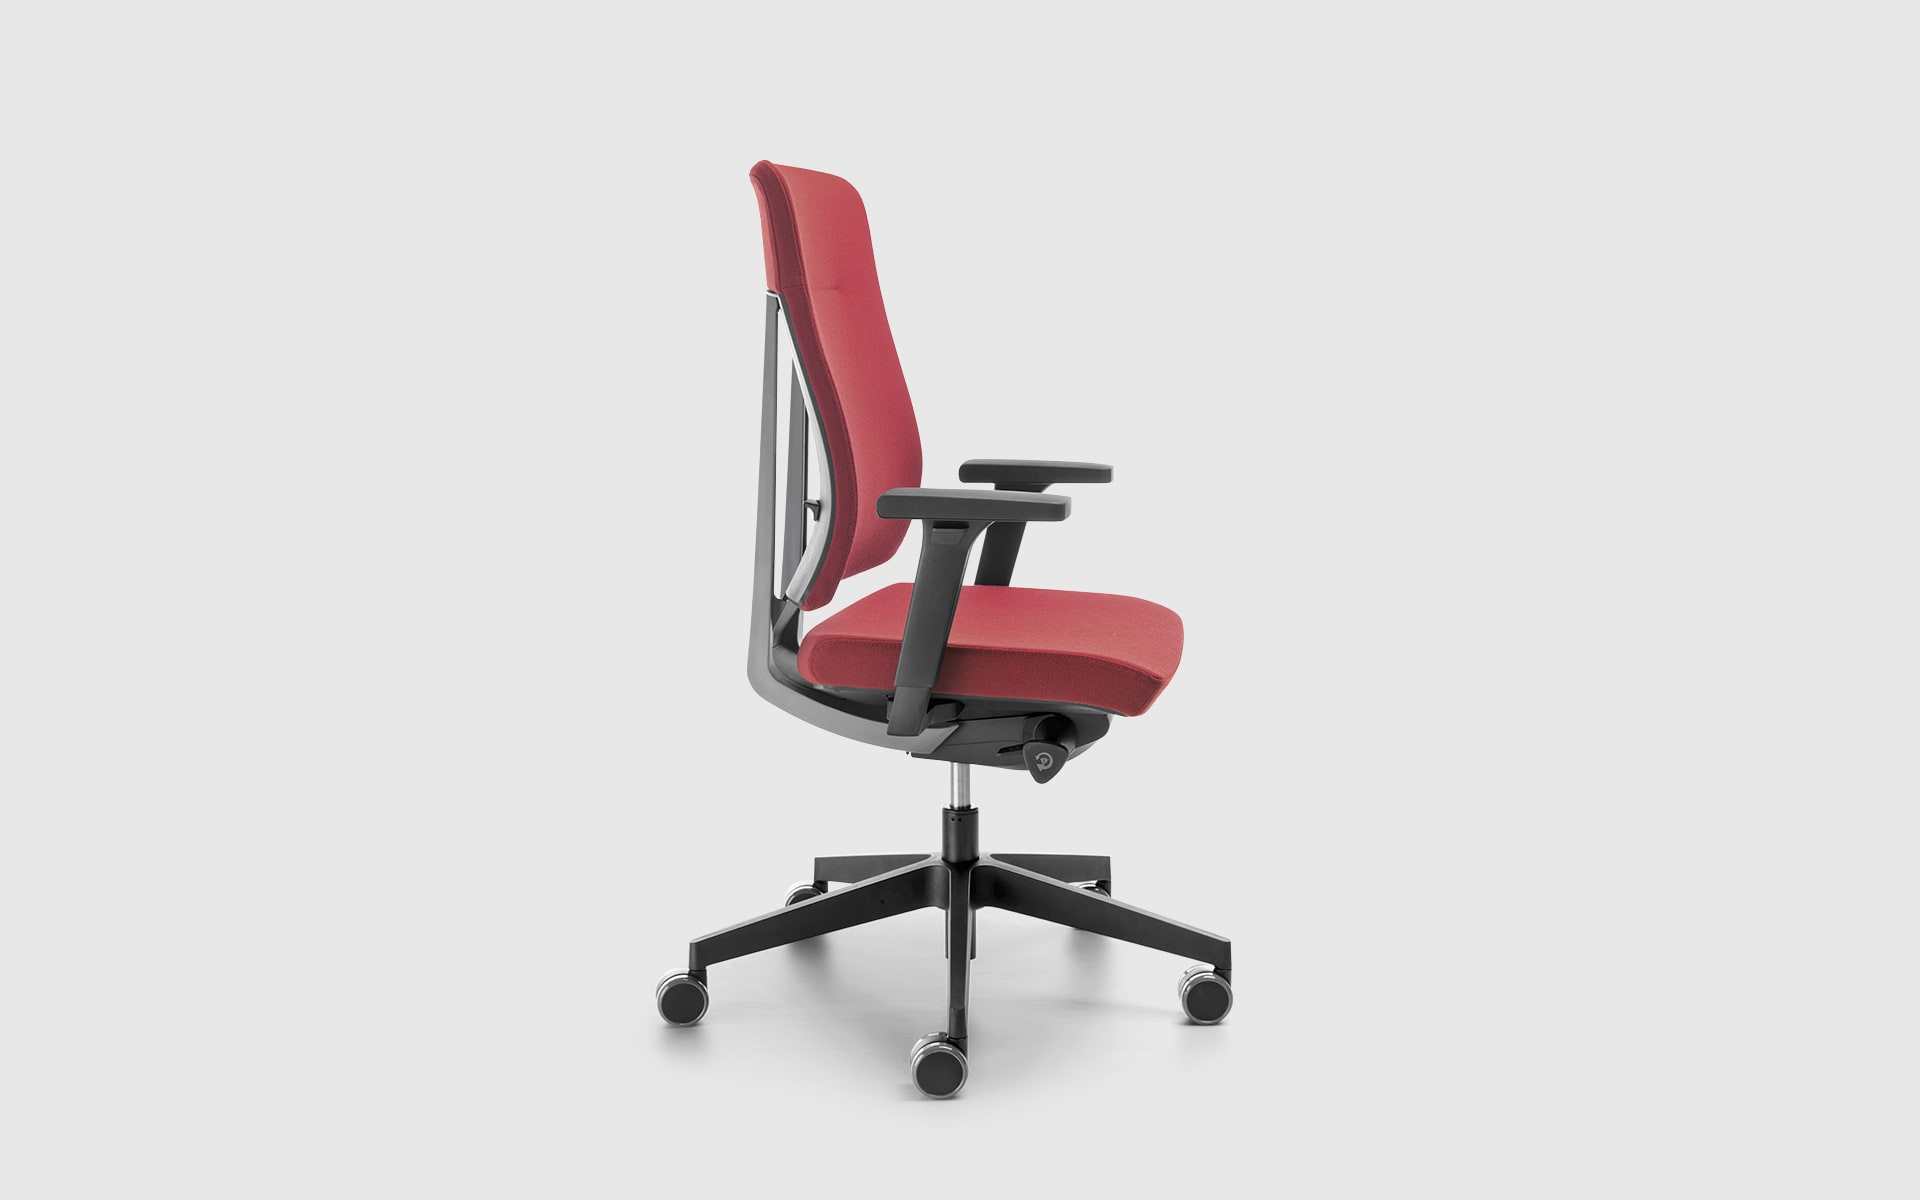 Profim Xenon office chair by ITO Design with red upholstery